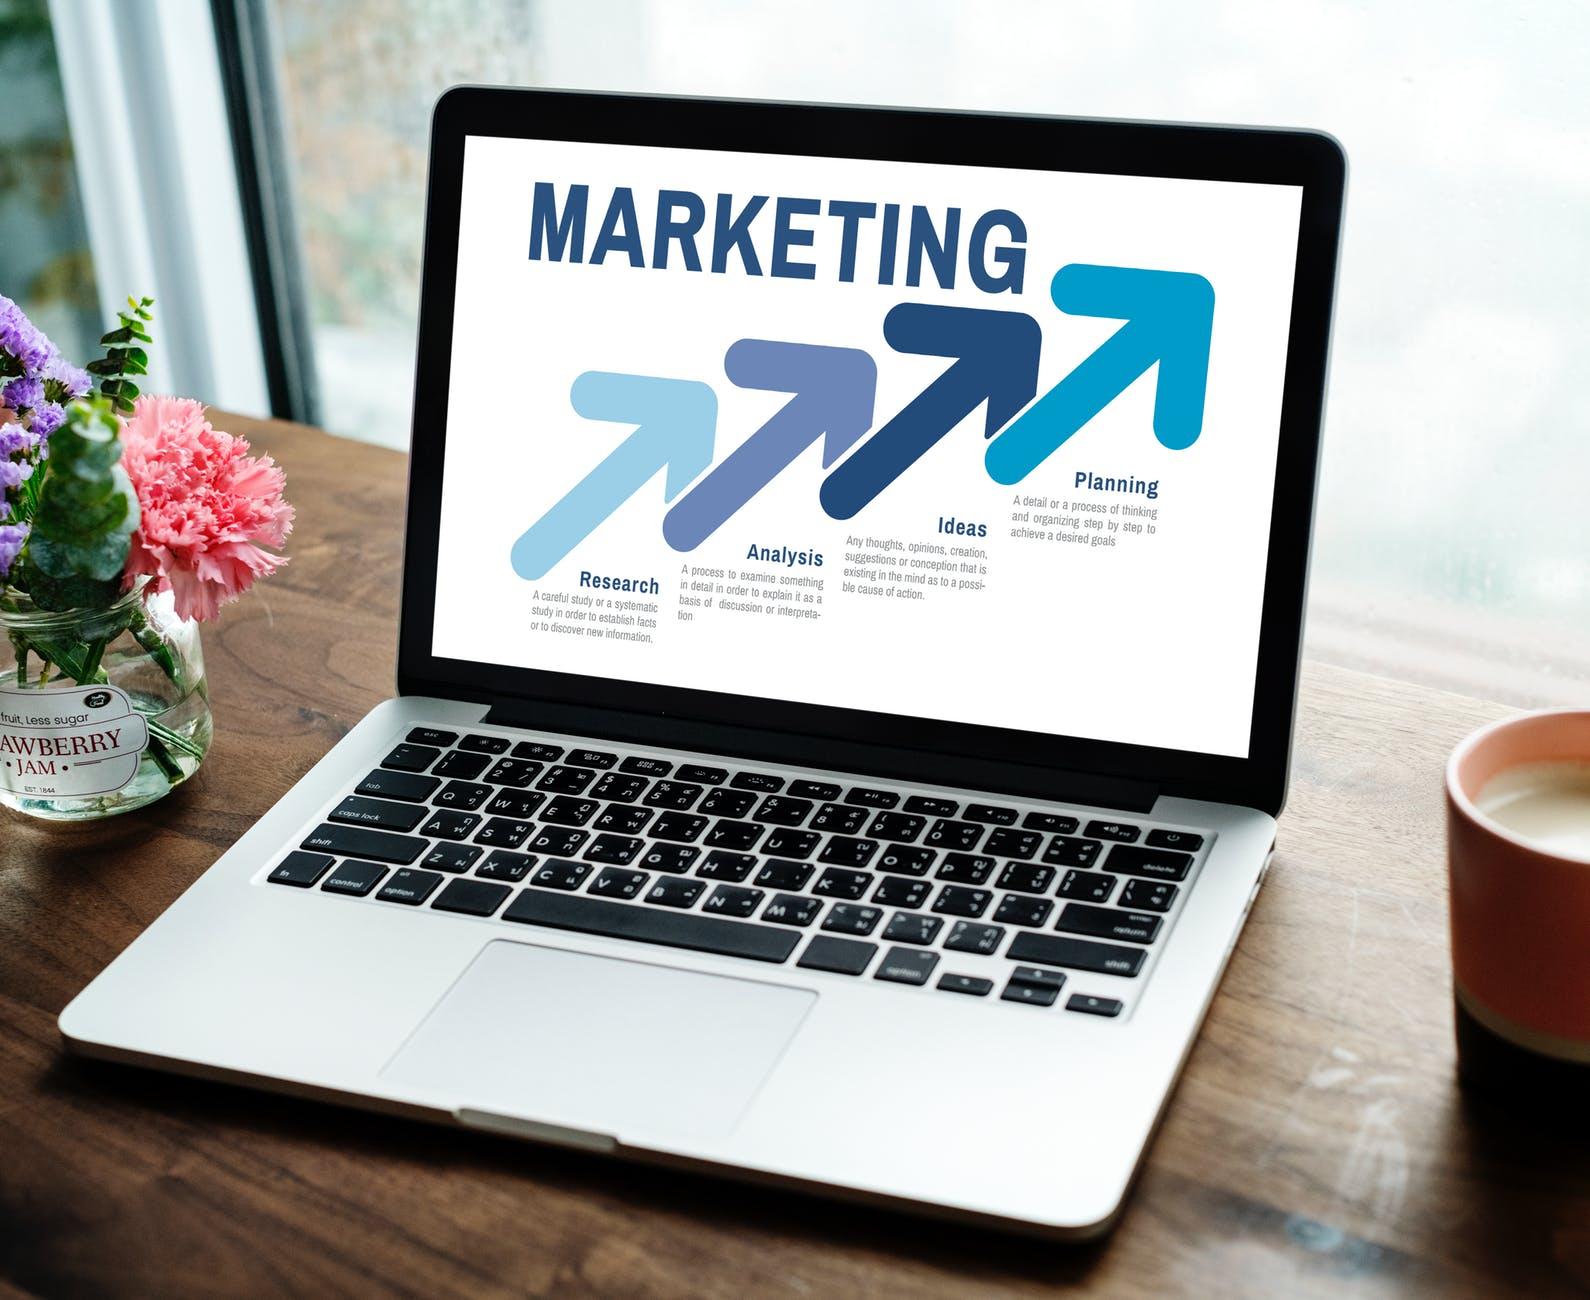 laptop with marketing display